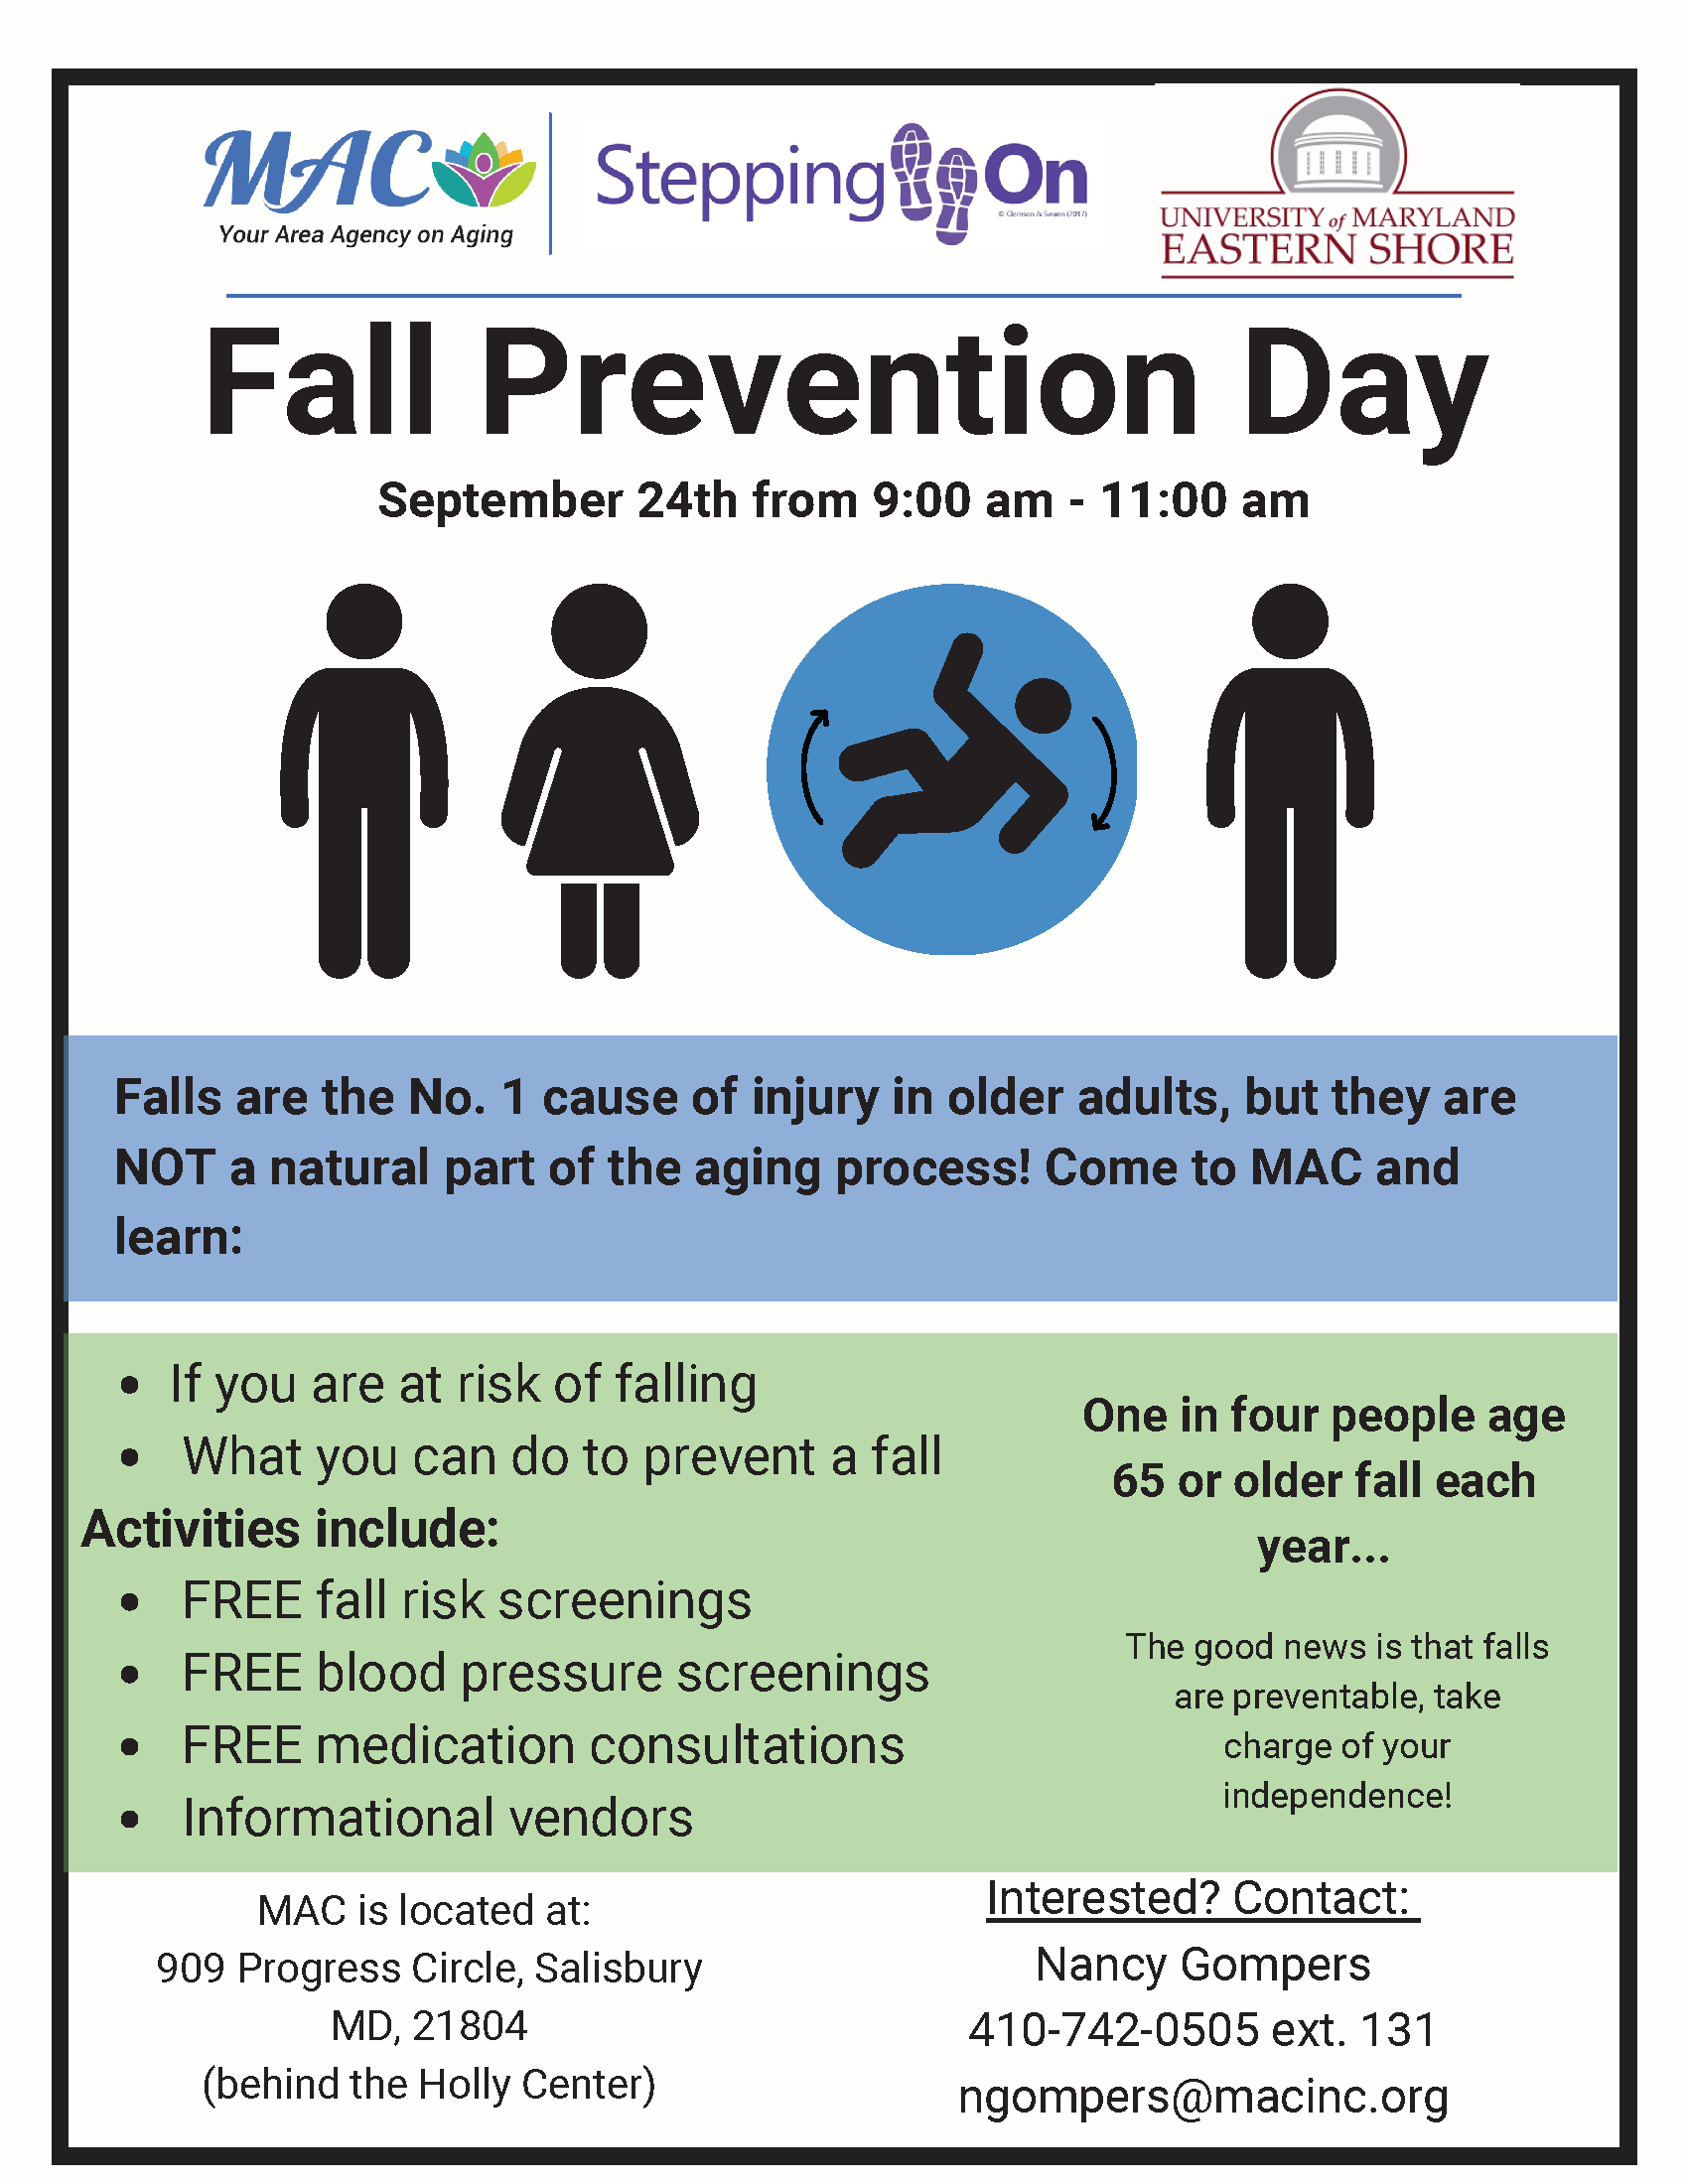 Copy of One in four people age 65 or older fall each year (2)